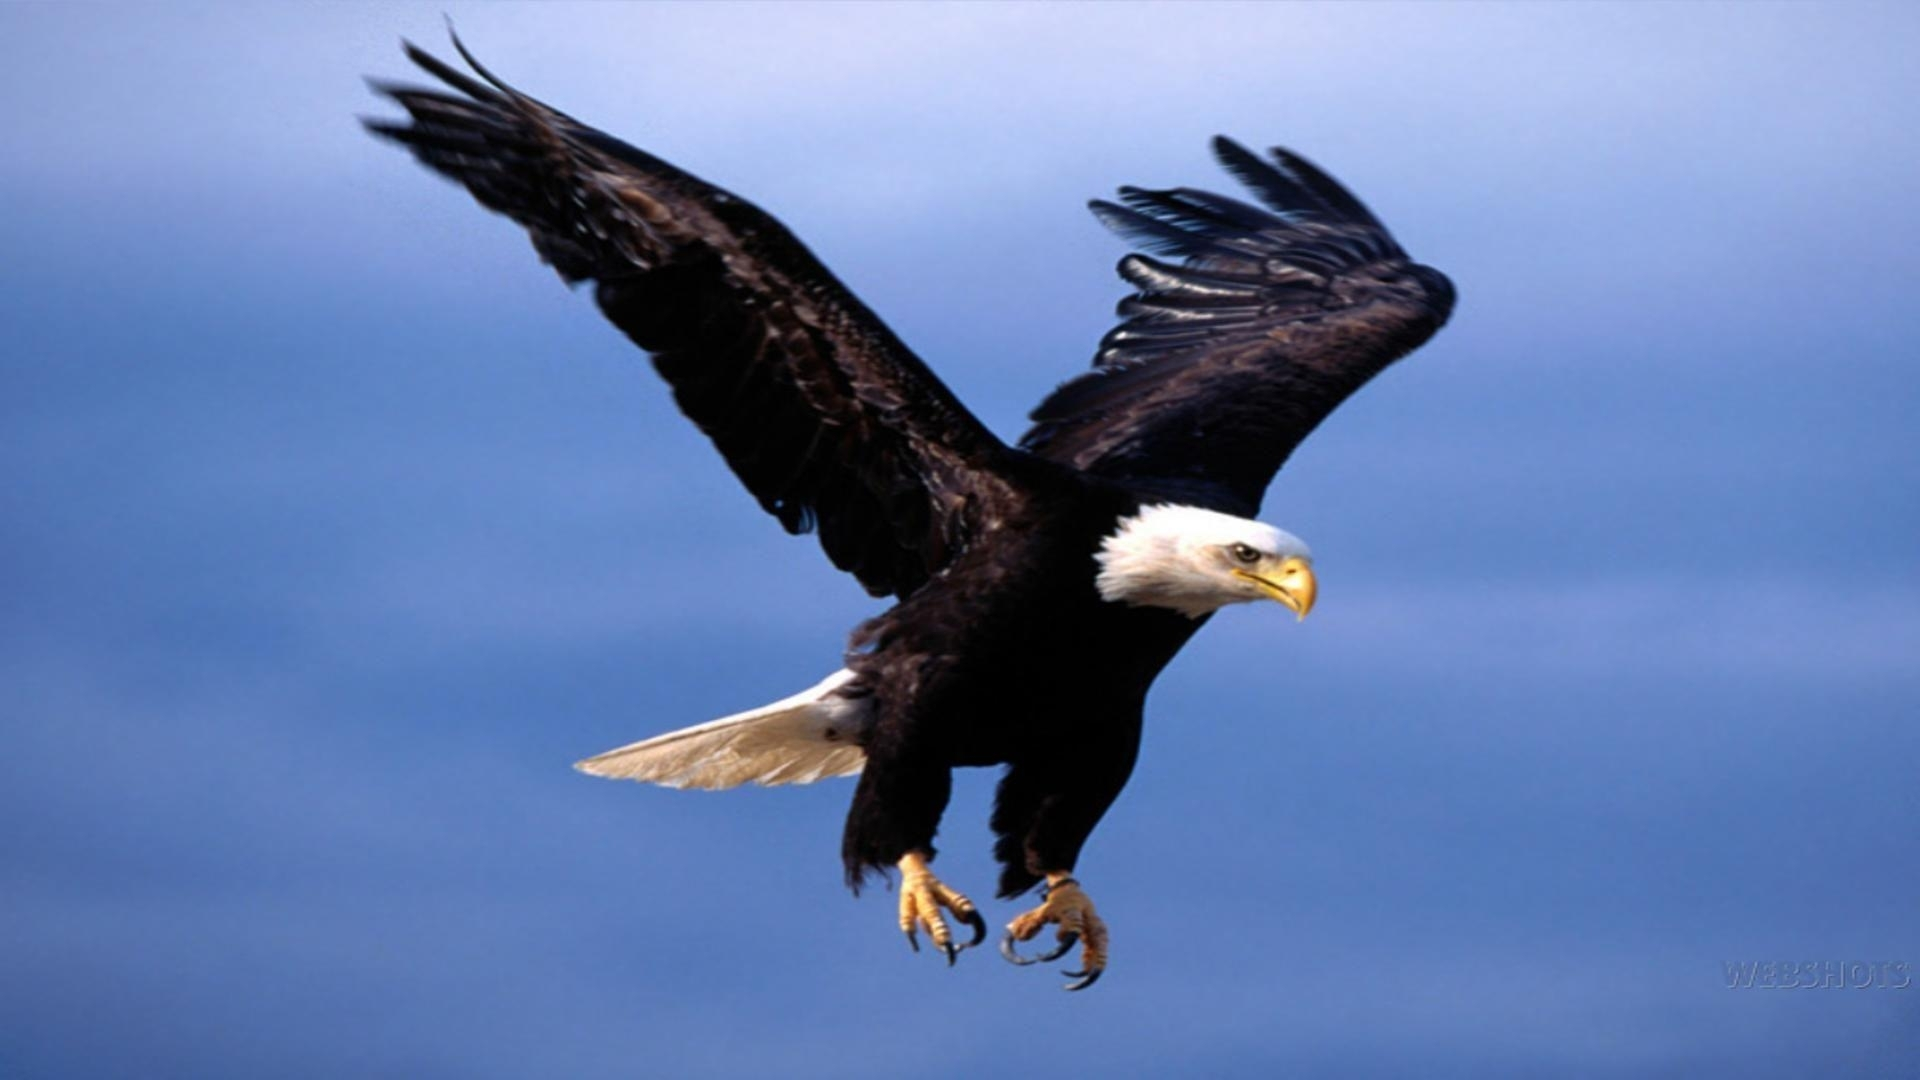 flying eagle wallpapers - wallpaper cave